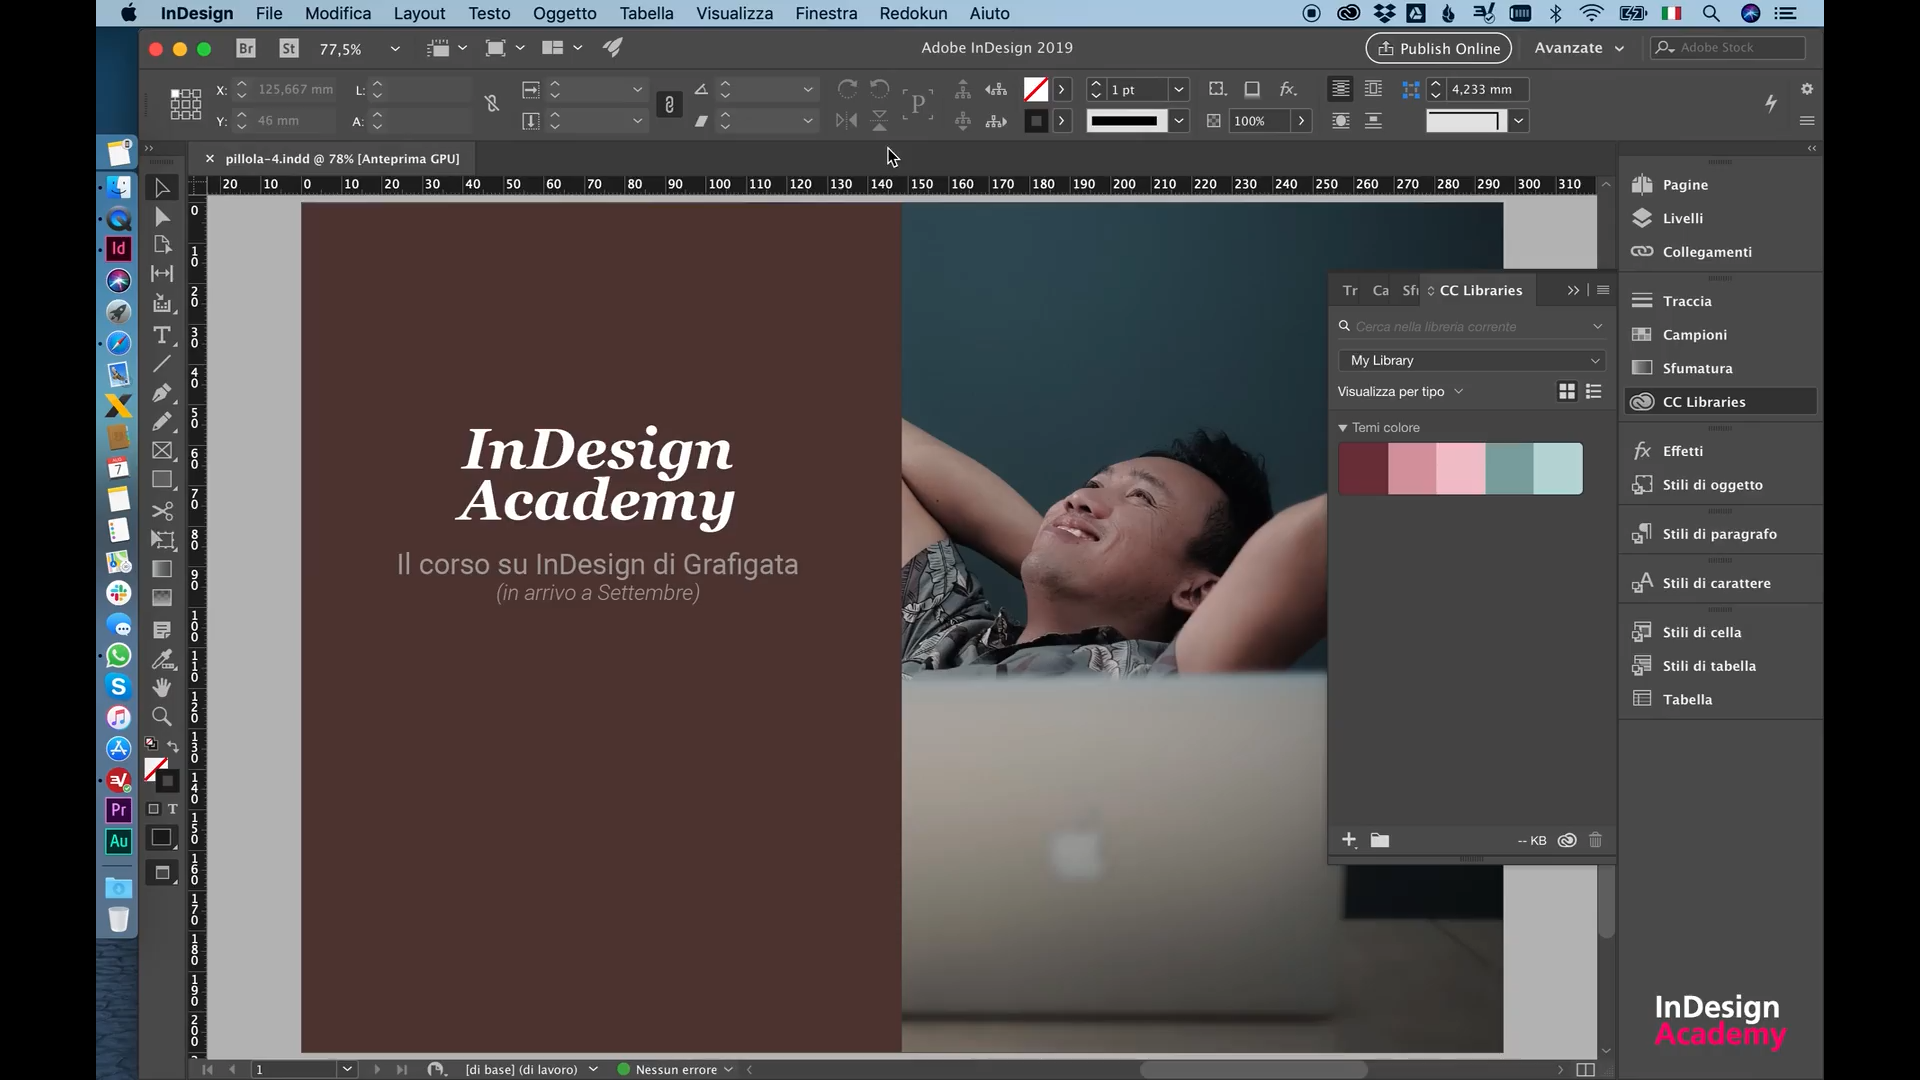 InDesign Academy - publishing